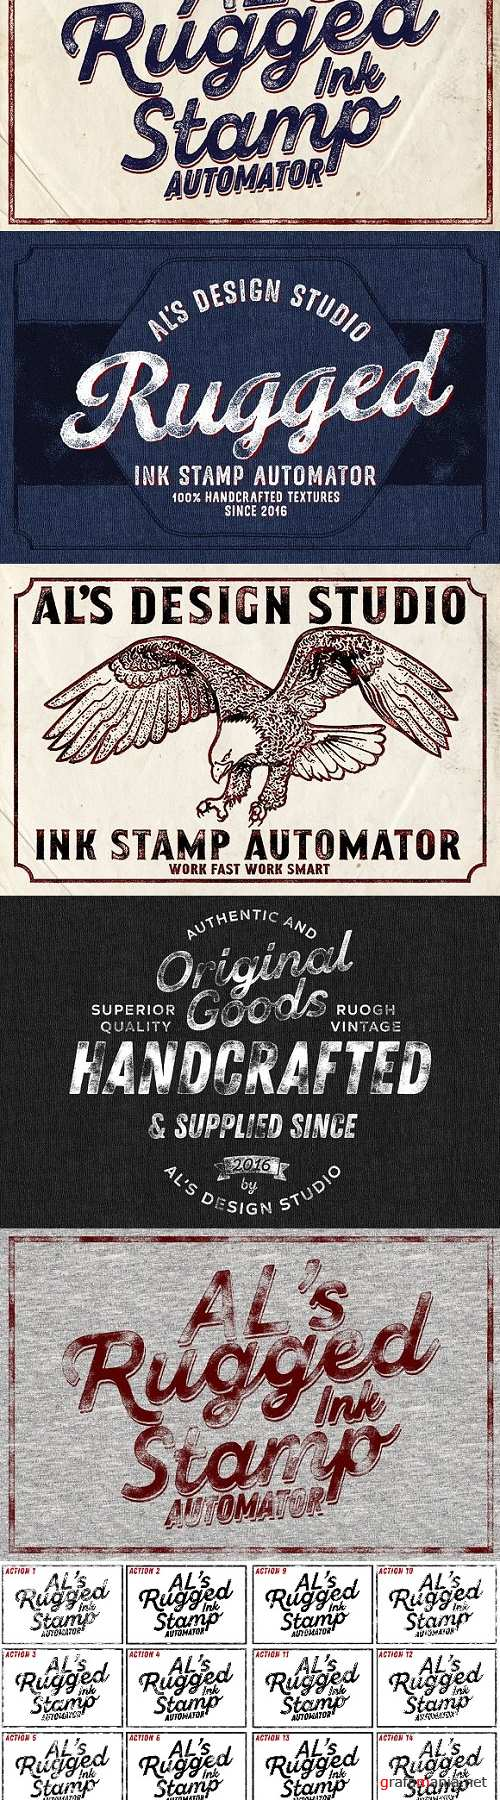 AL's Rugged Ink Stamp Automator 2128030